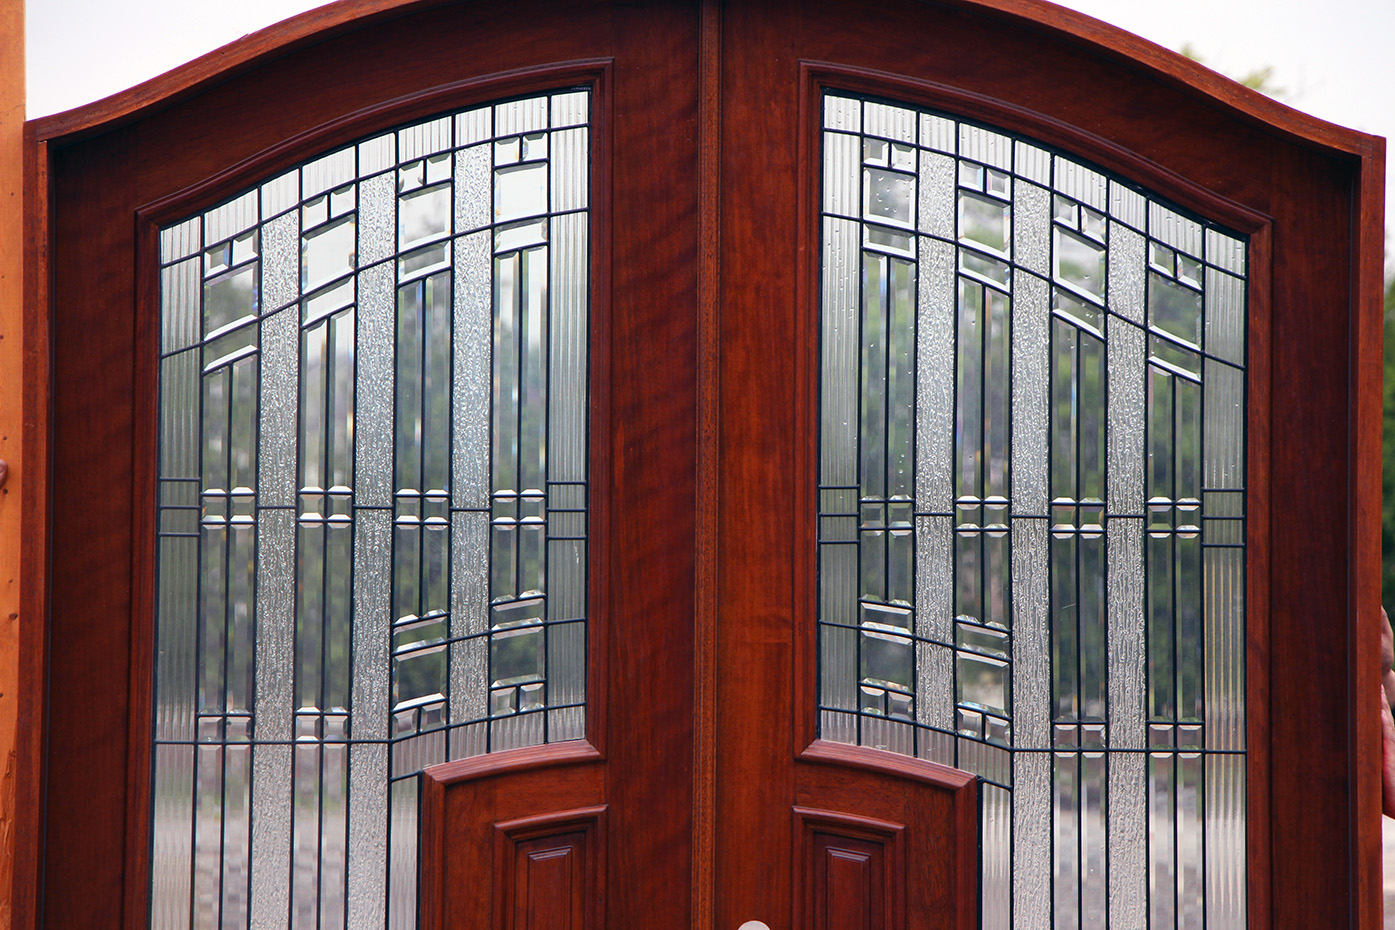 930 #6A241A African Mahogany Arched Top Double Doors picture/photo Arched Doors With Glass 42191395